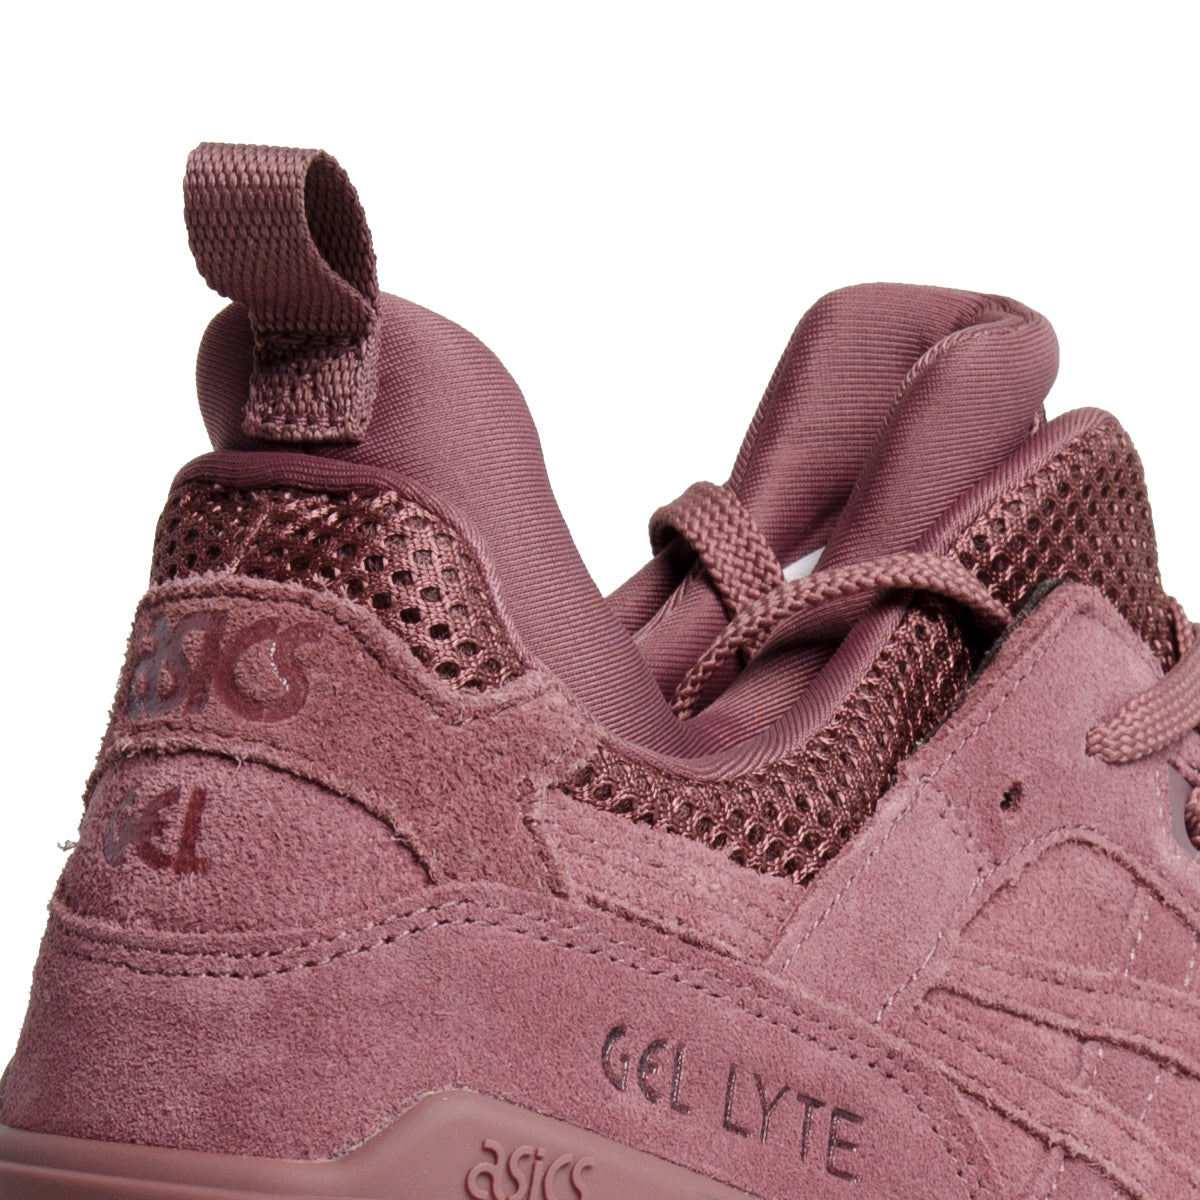 low priced eee76 9e7e0 ASICS GEL-Lyte MT Shoes Rose Taupe | Chicago City Sports